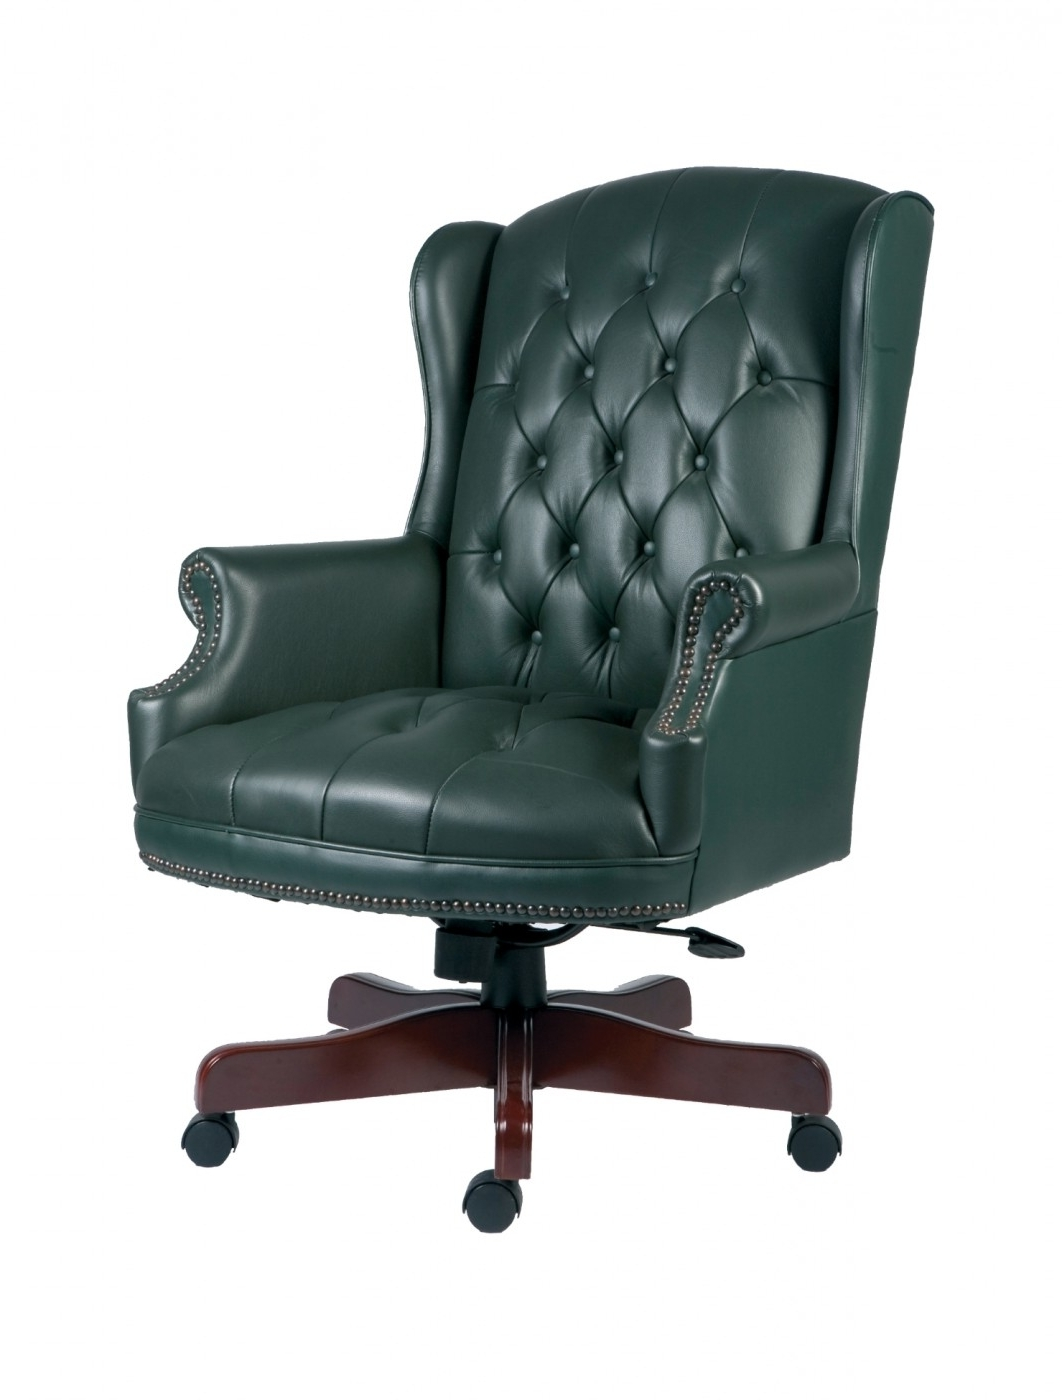 121 Office Pertaining To Latest Green Executive Office Chairs (Gallery 8 of 20)